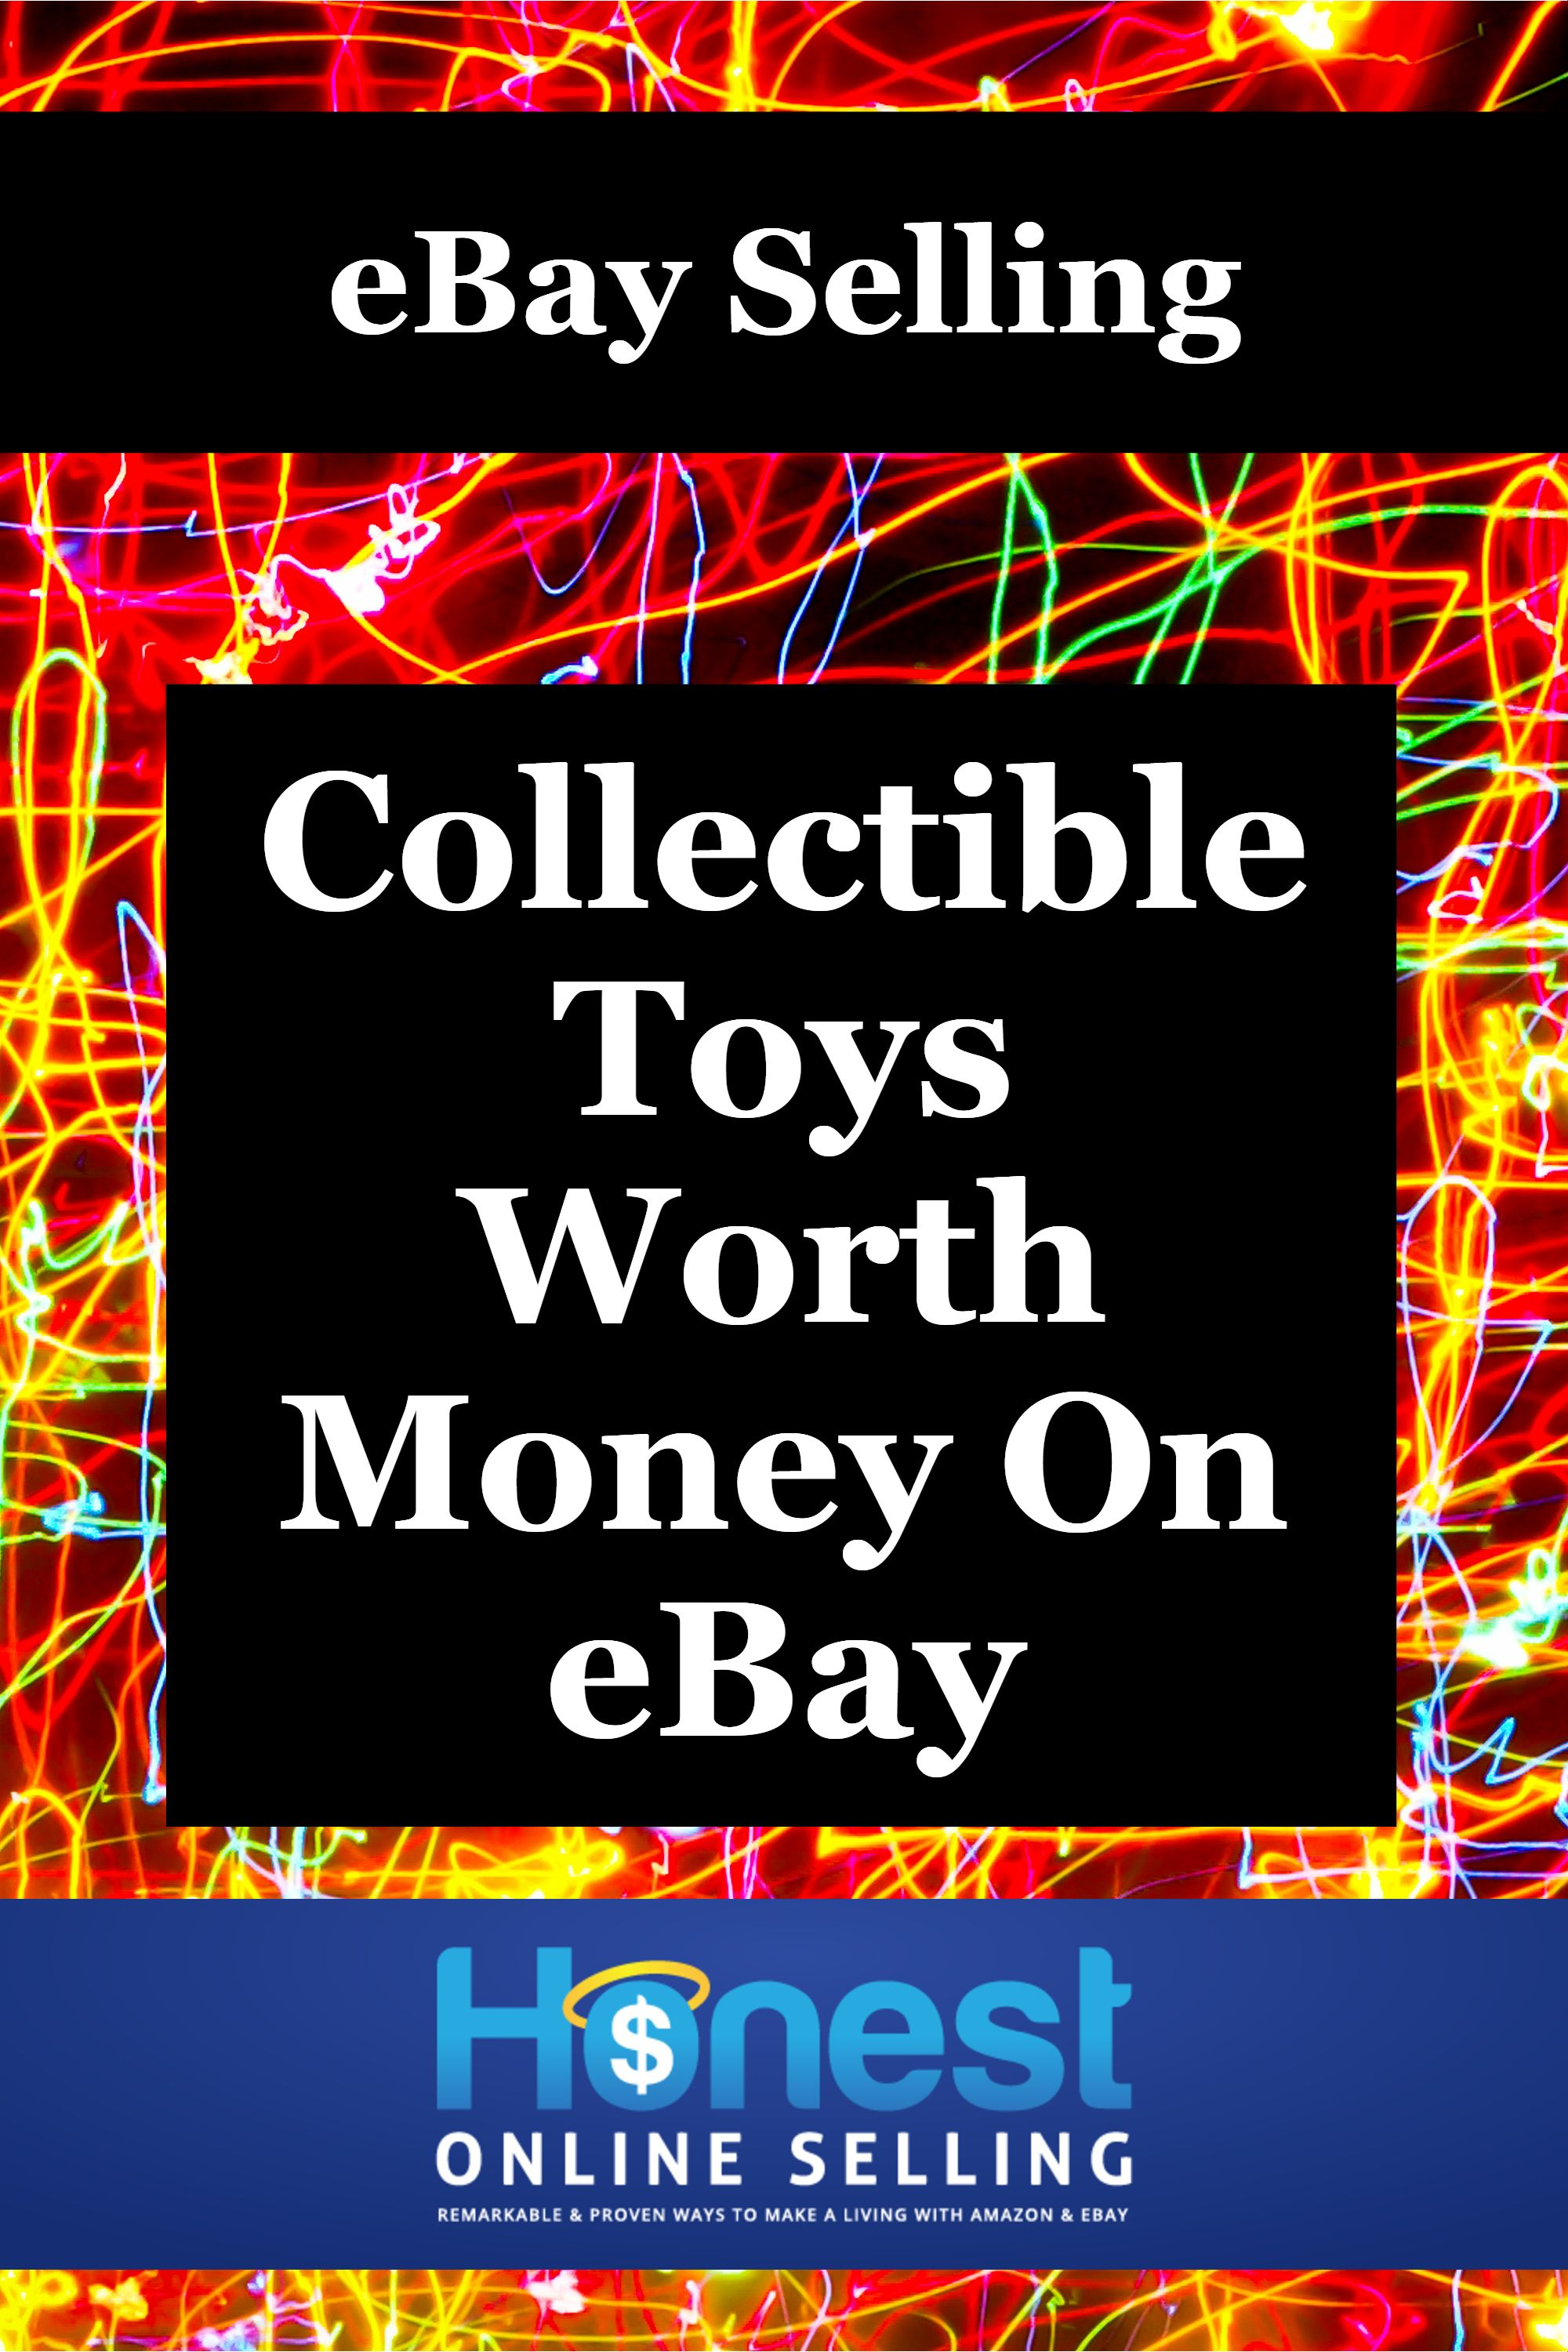 These Toys Used And New Are Worth Reselling On Ebay Amazon Ebay Business Business Motivation Ebay Business Ideas